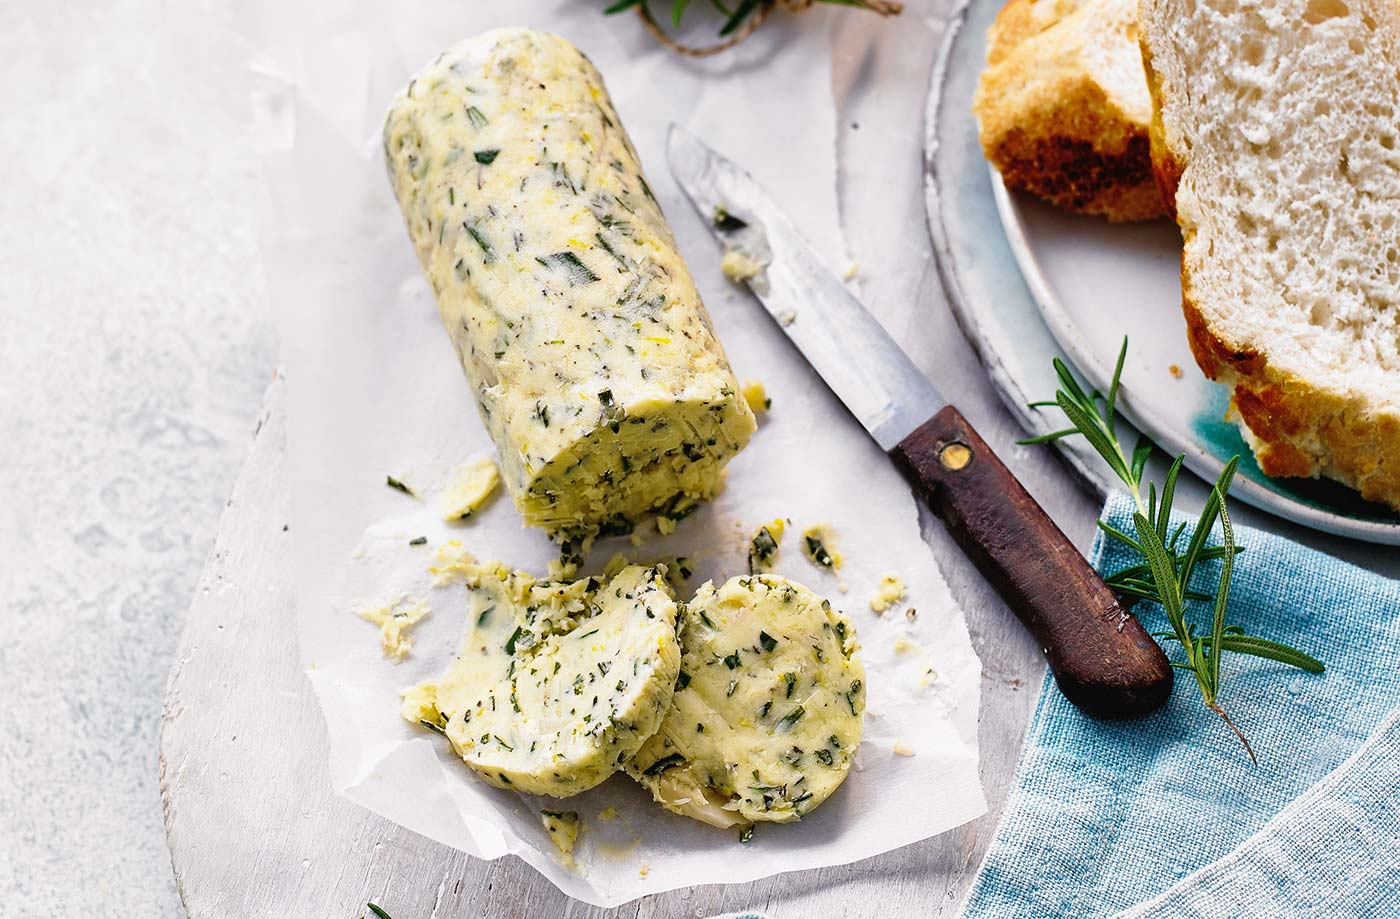 Rosemary, lemon and roasted garlic butter recipe